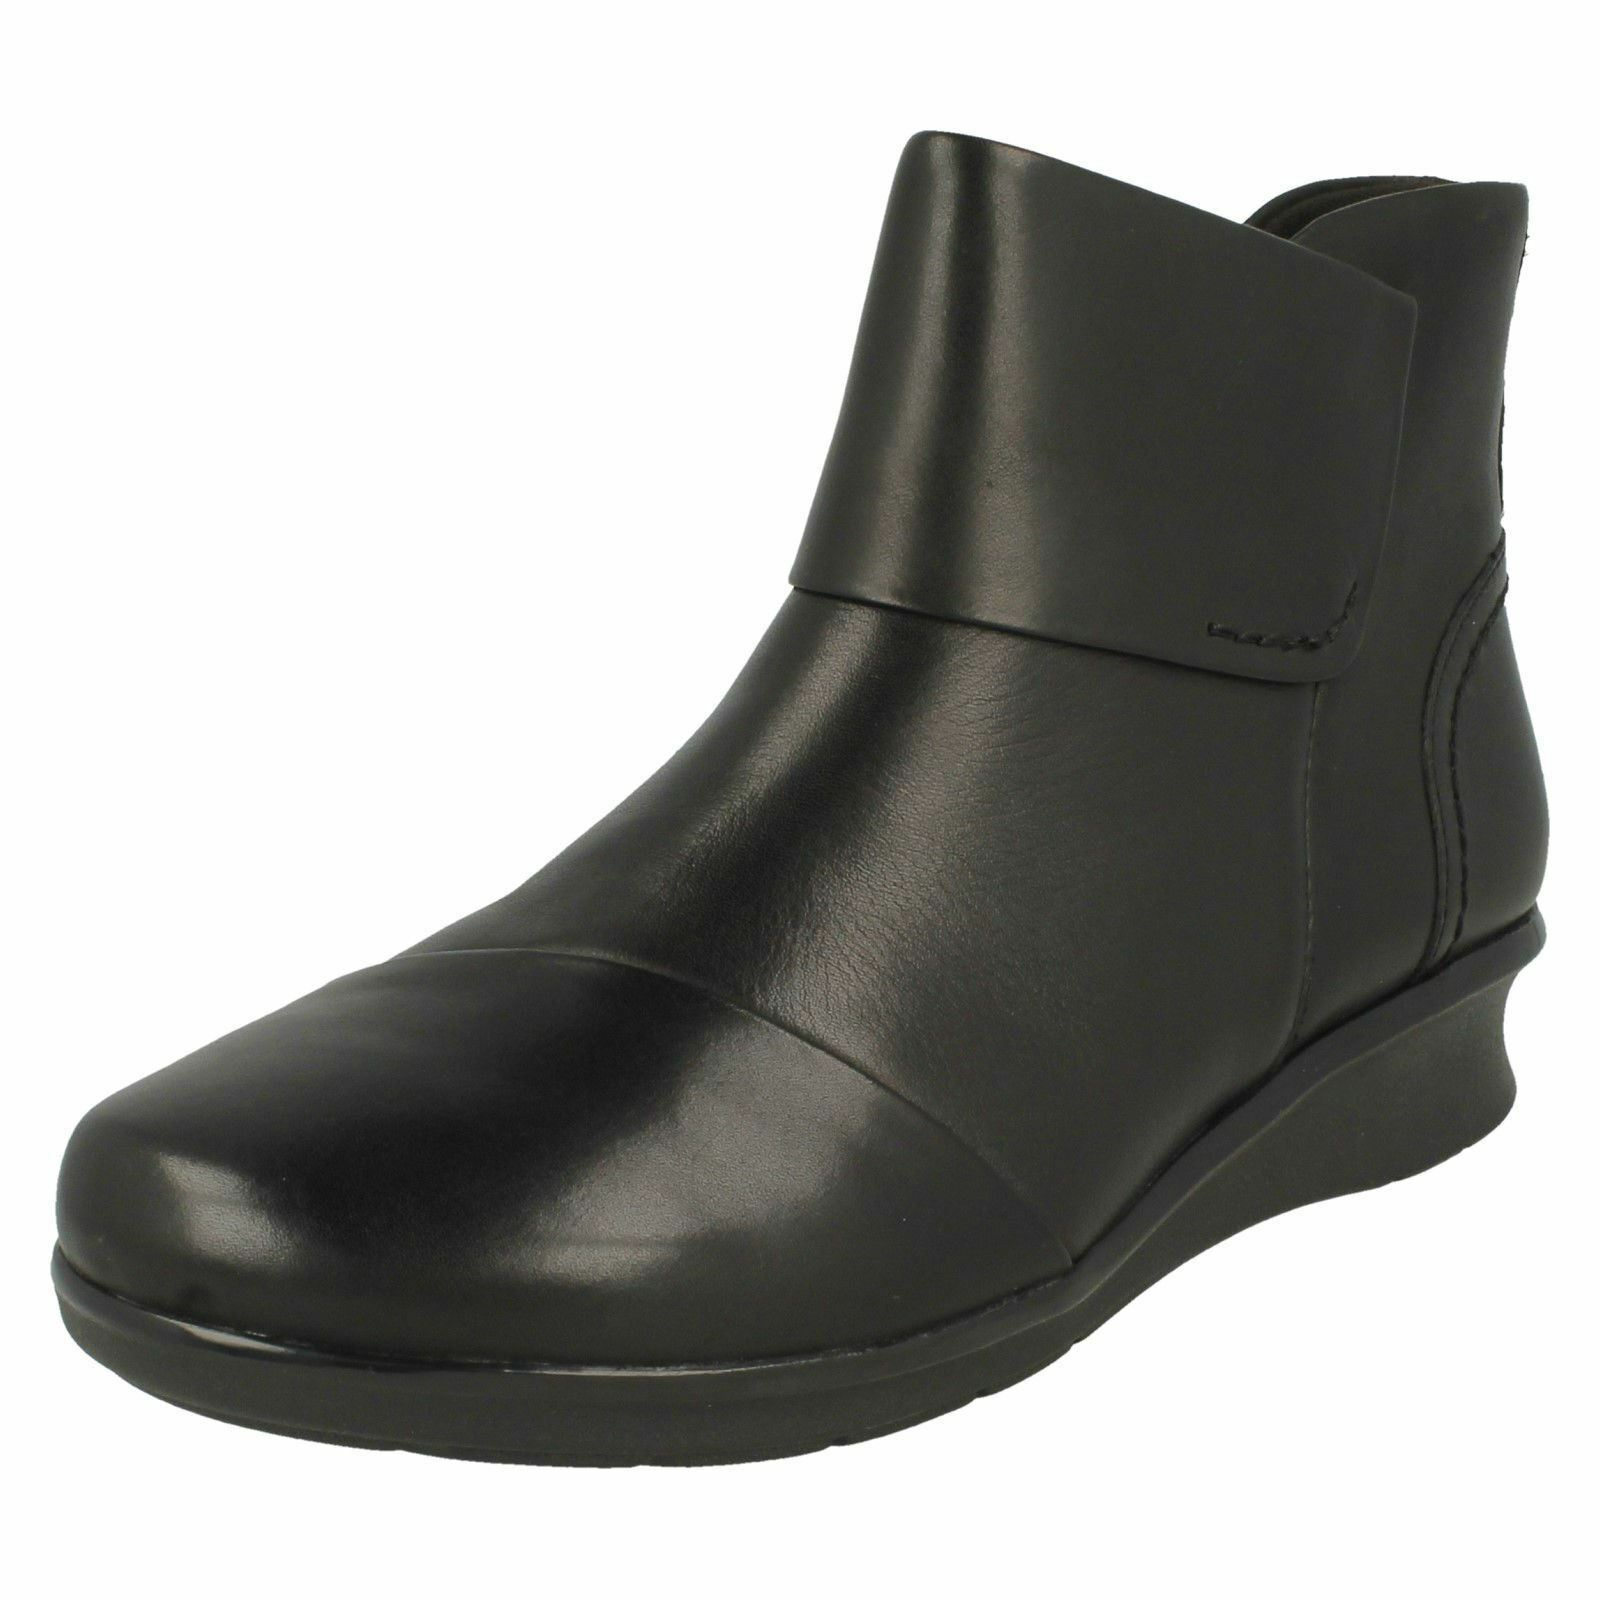 'Ladies Clarks' Ankle Boots  -Hope Track